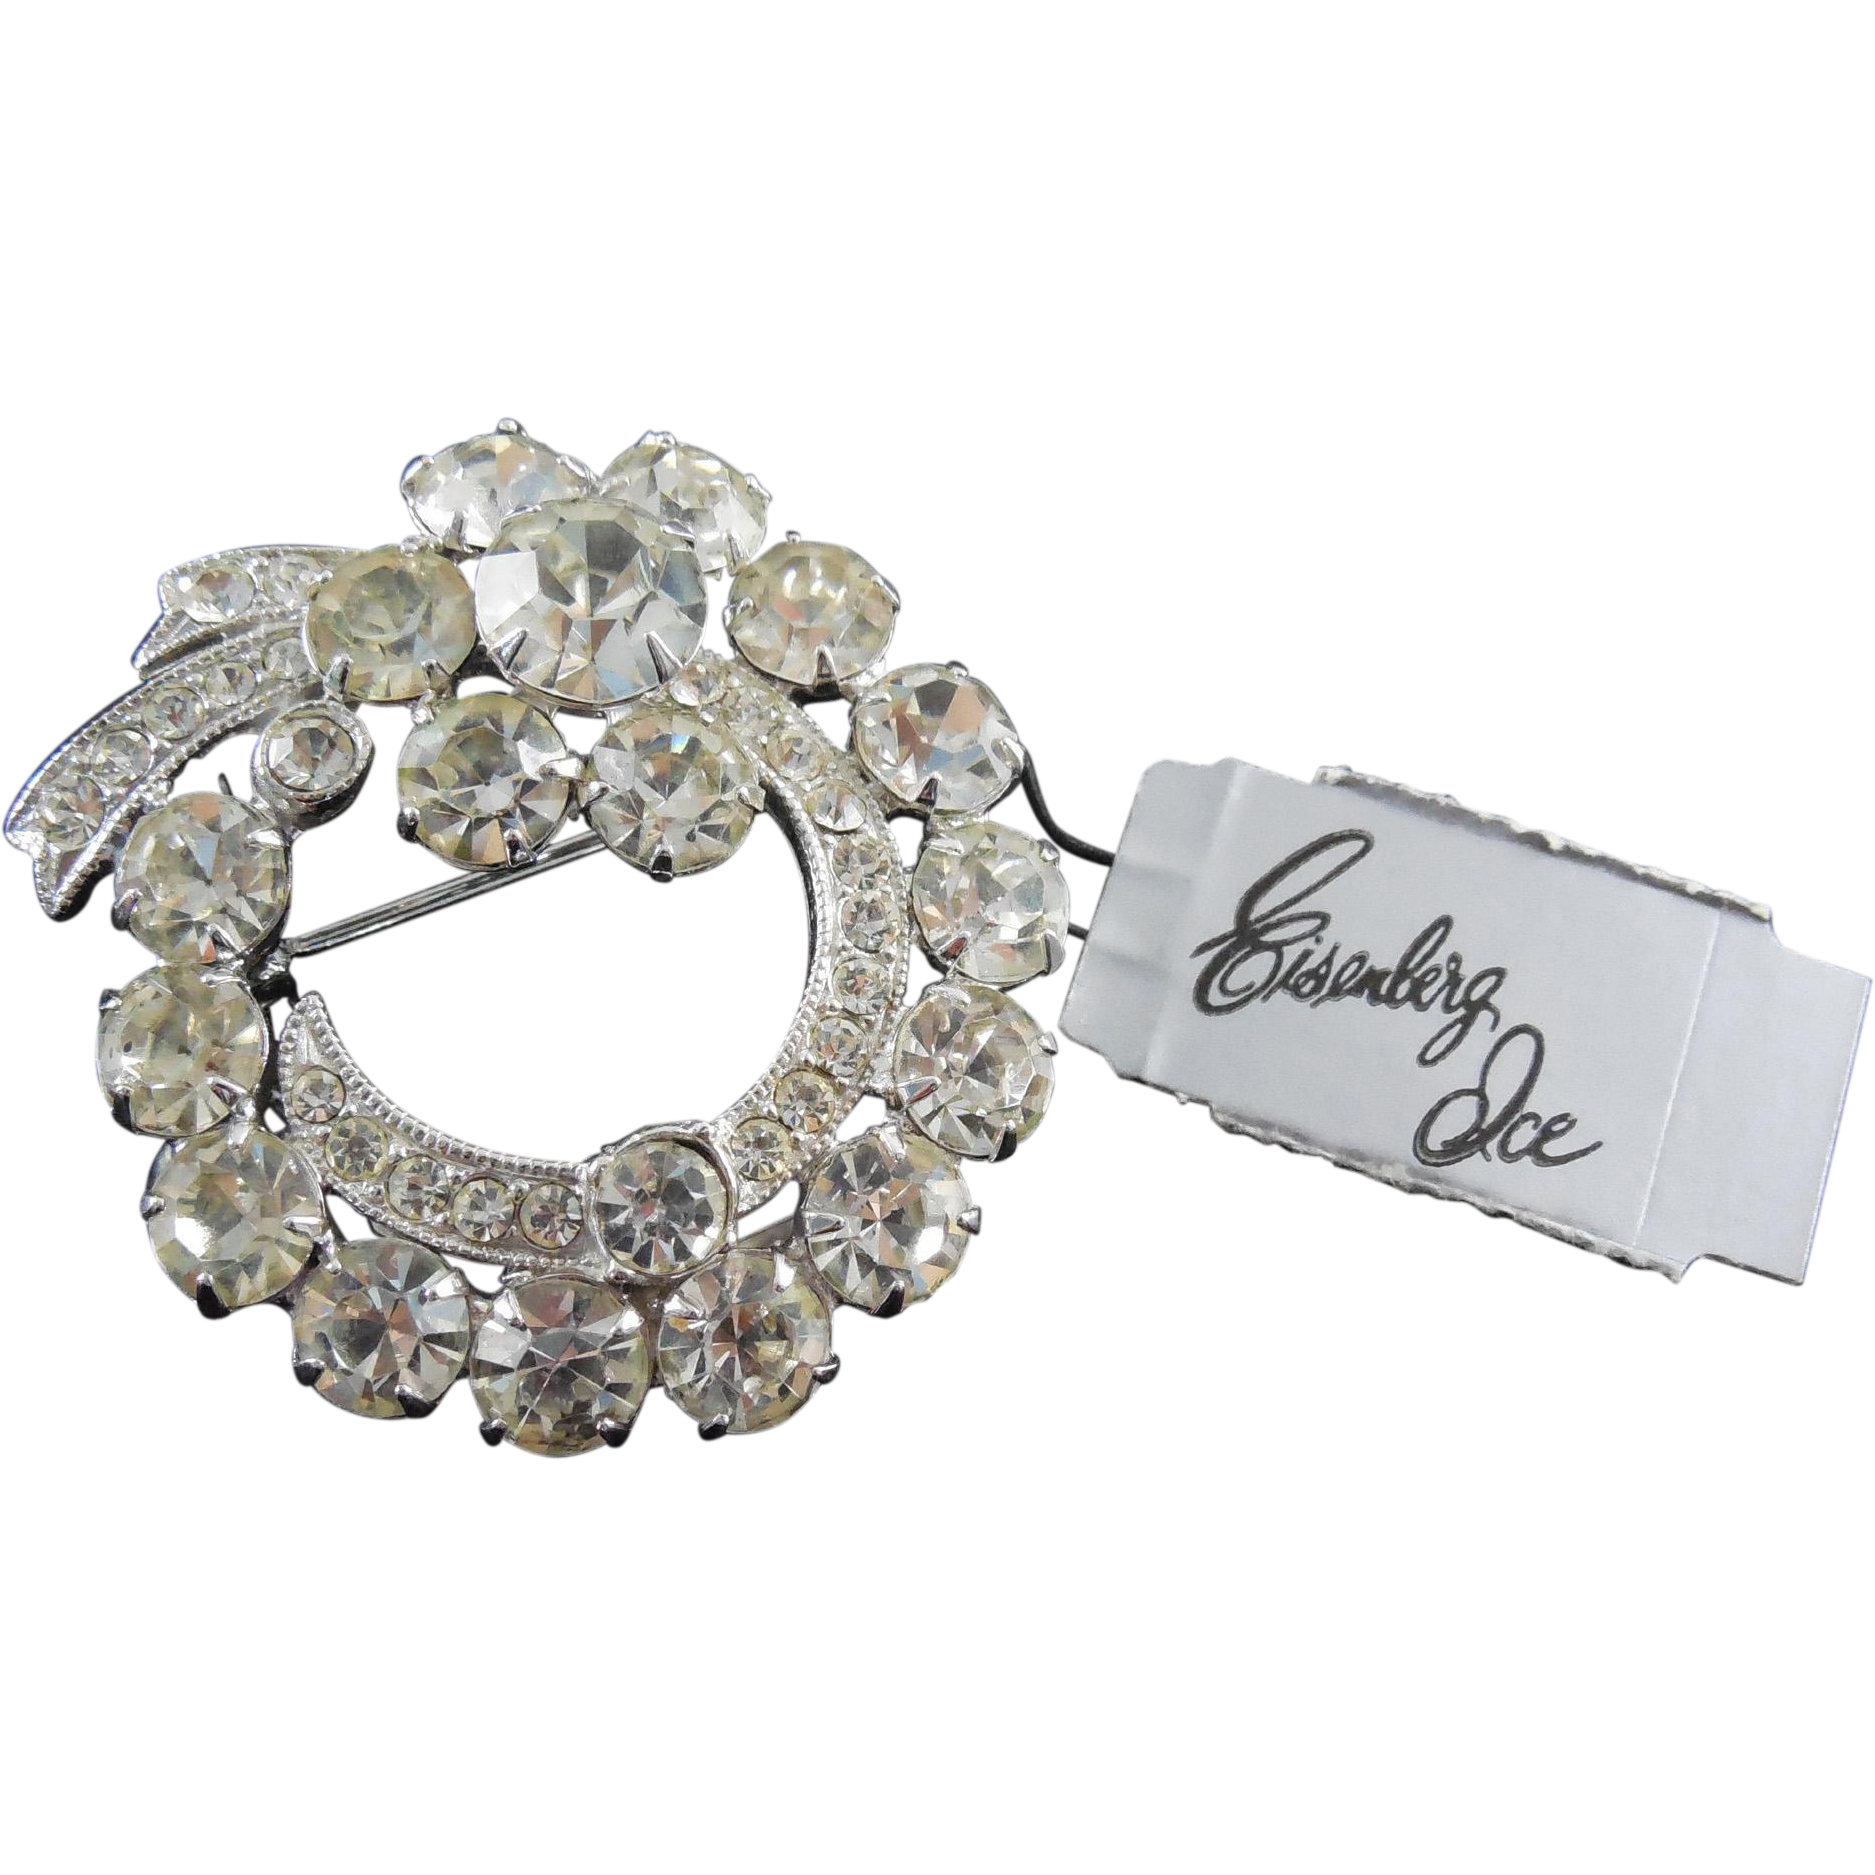 Gorgeous Sparkly Signed Eisenberg Ice Brooch with Original Tag